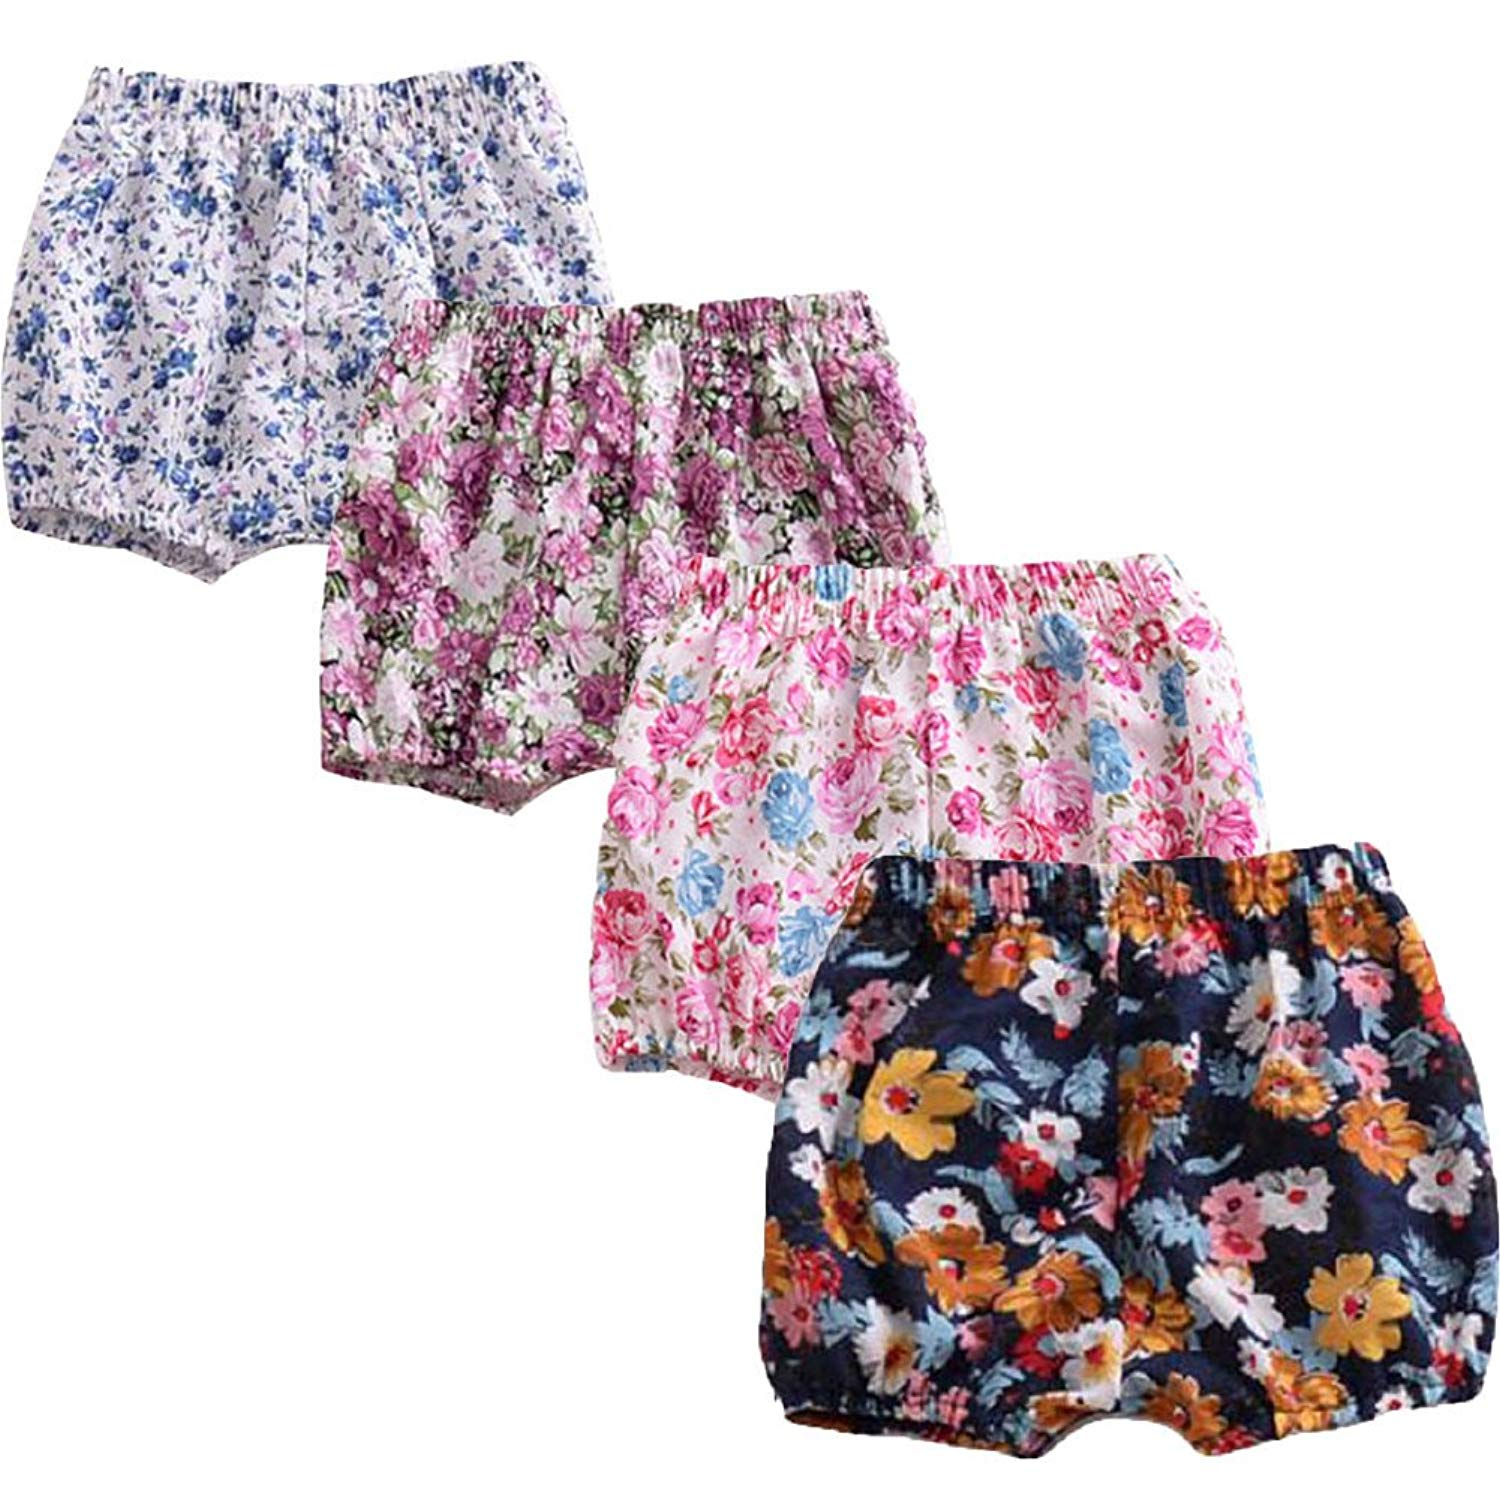 626f5afda76 Get Quotations · LOOLY Girls  Toddler 4-Pack Shorts Baby Girls Floral  Bloomers Shorts